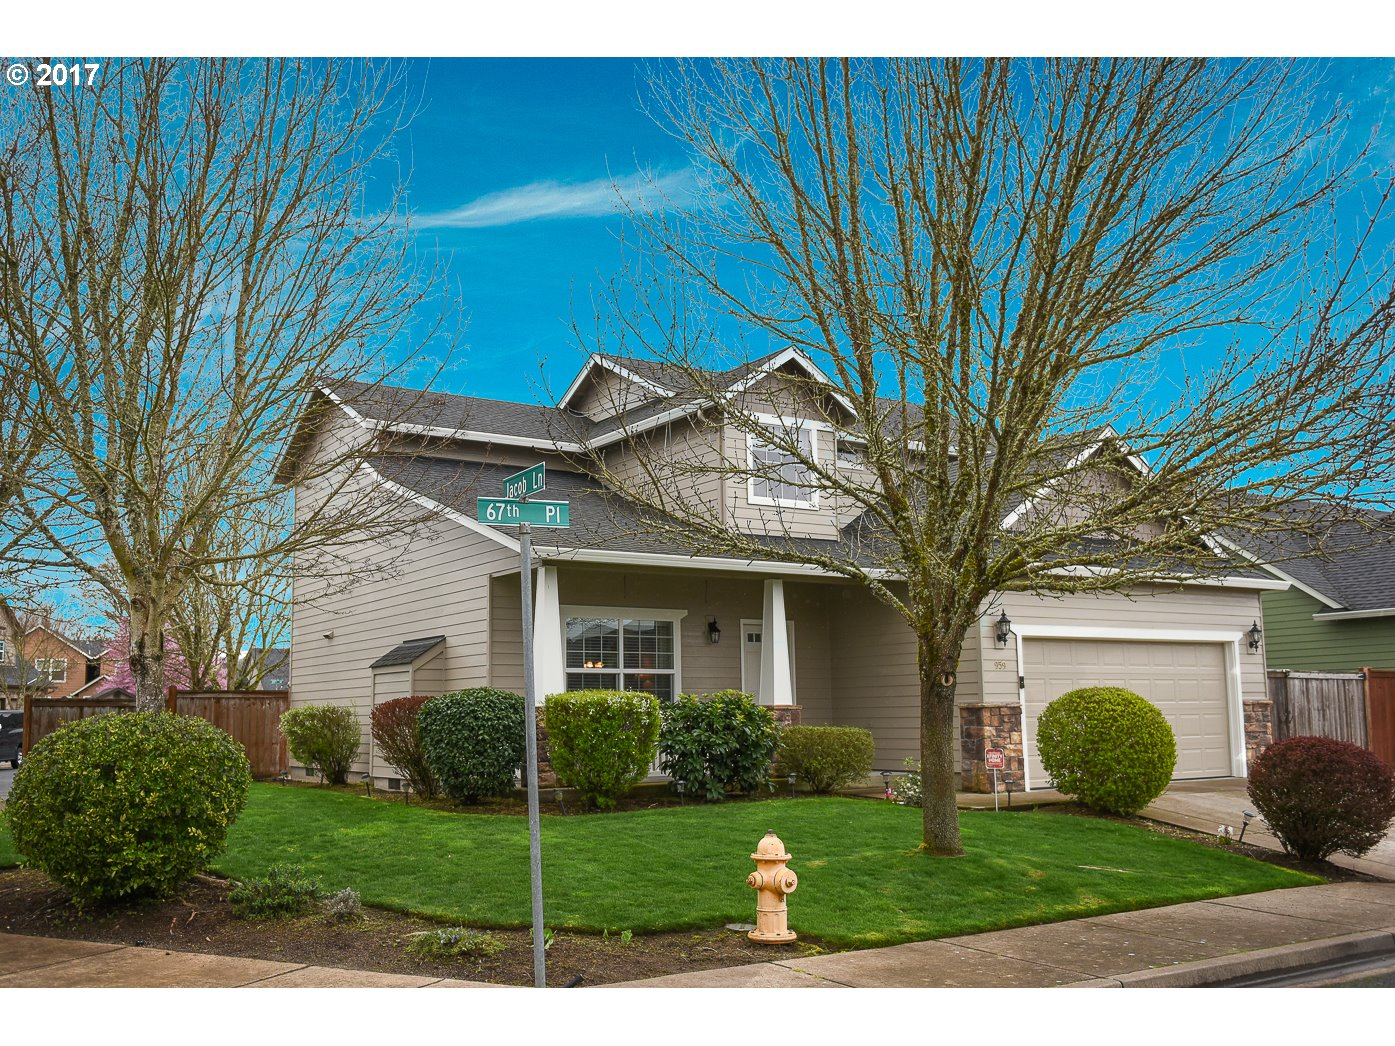 959 67TH PL, Springfield, OR 97478